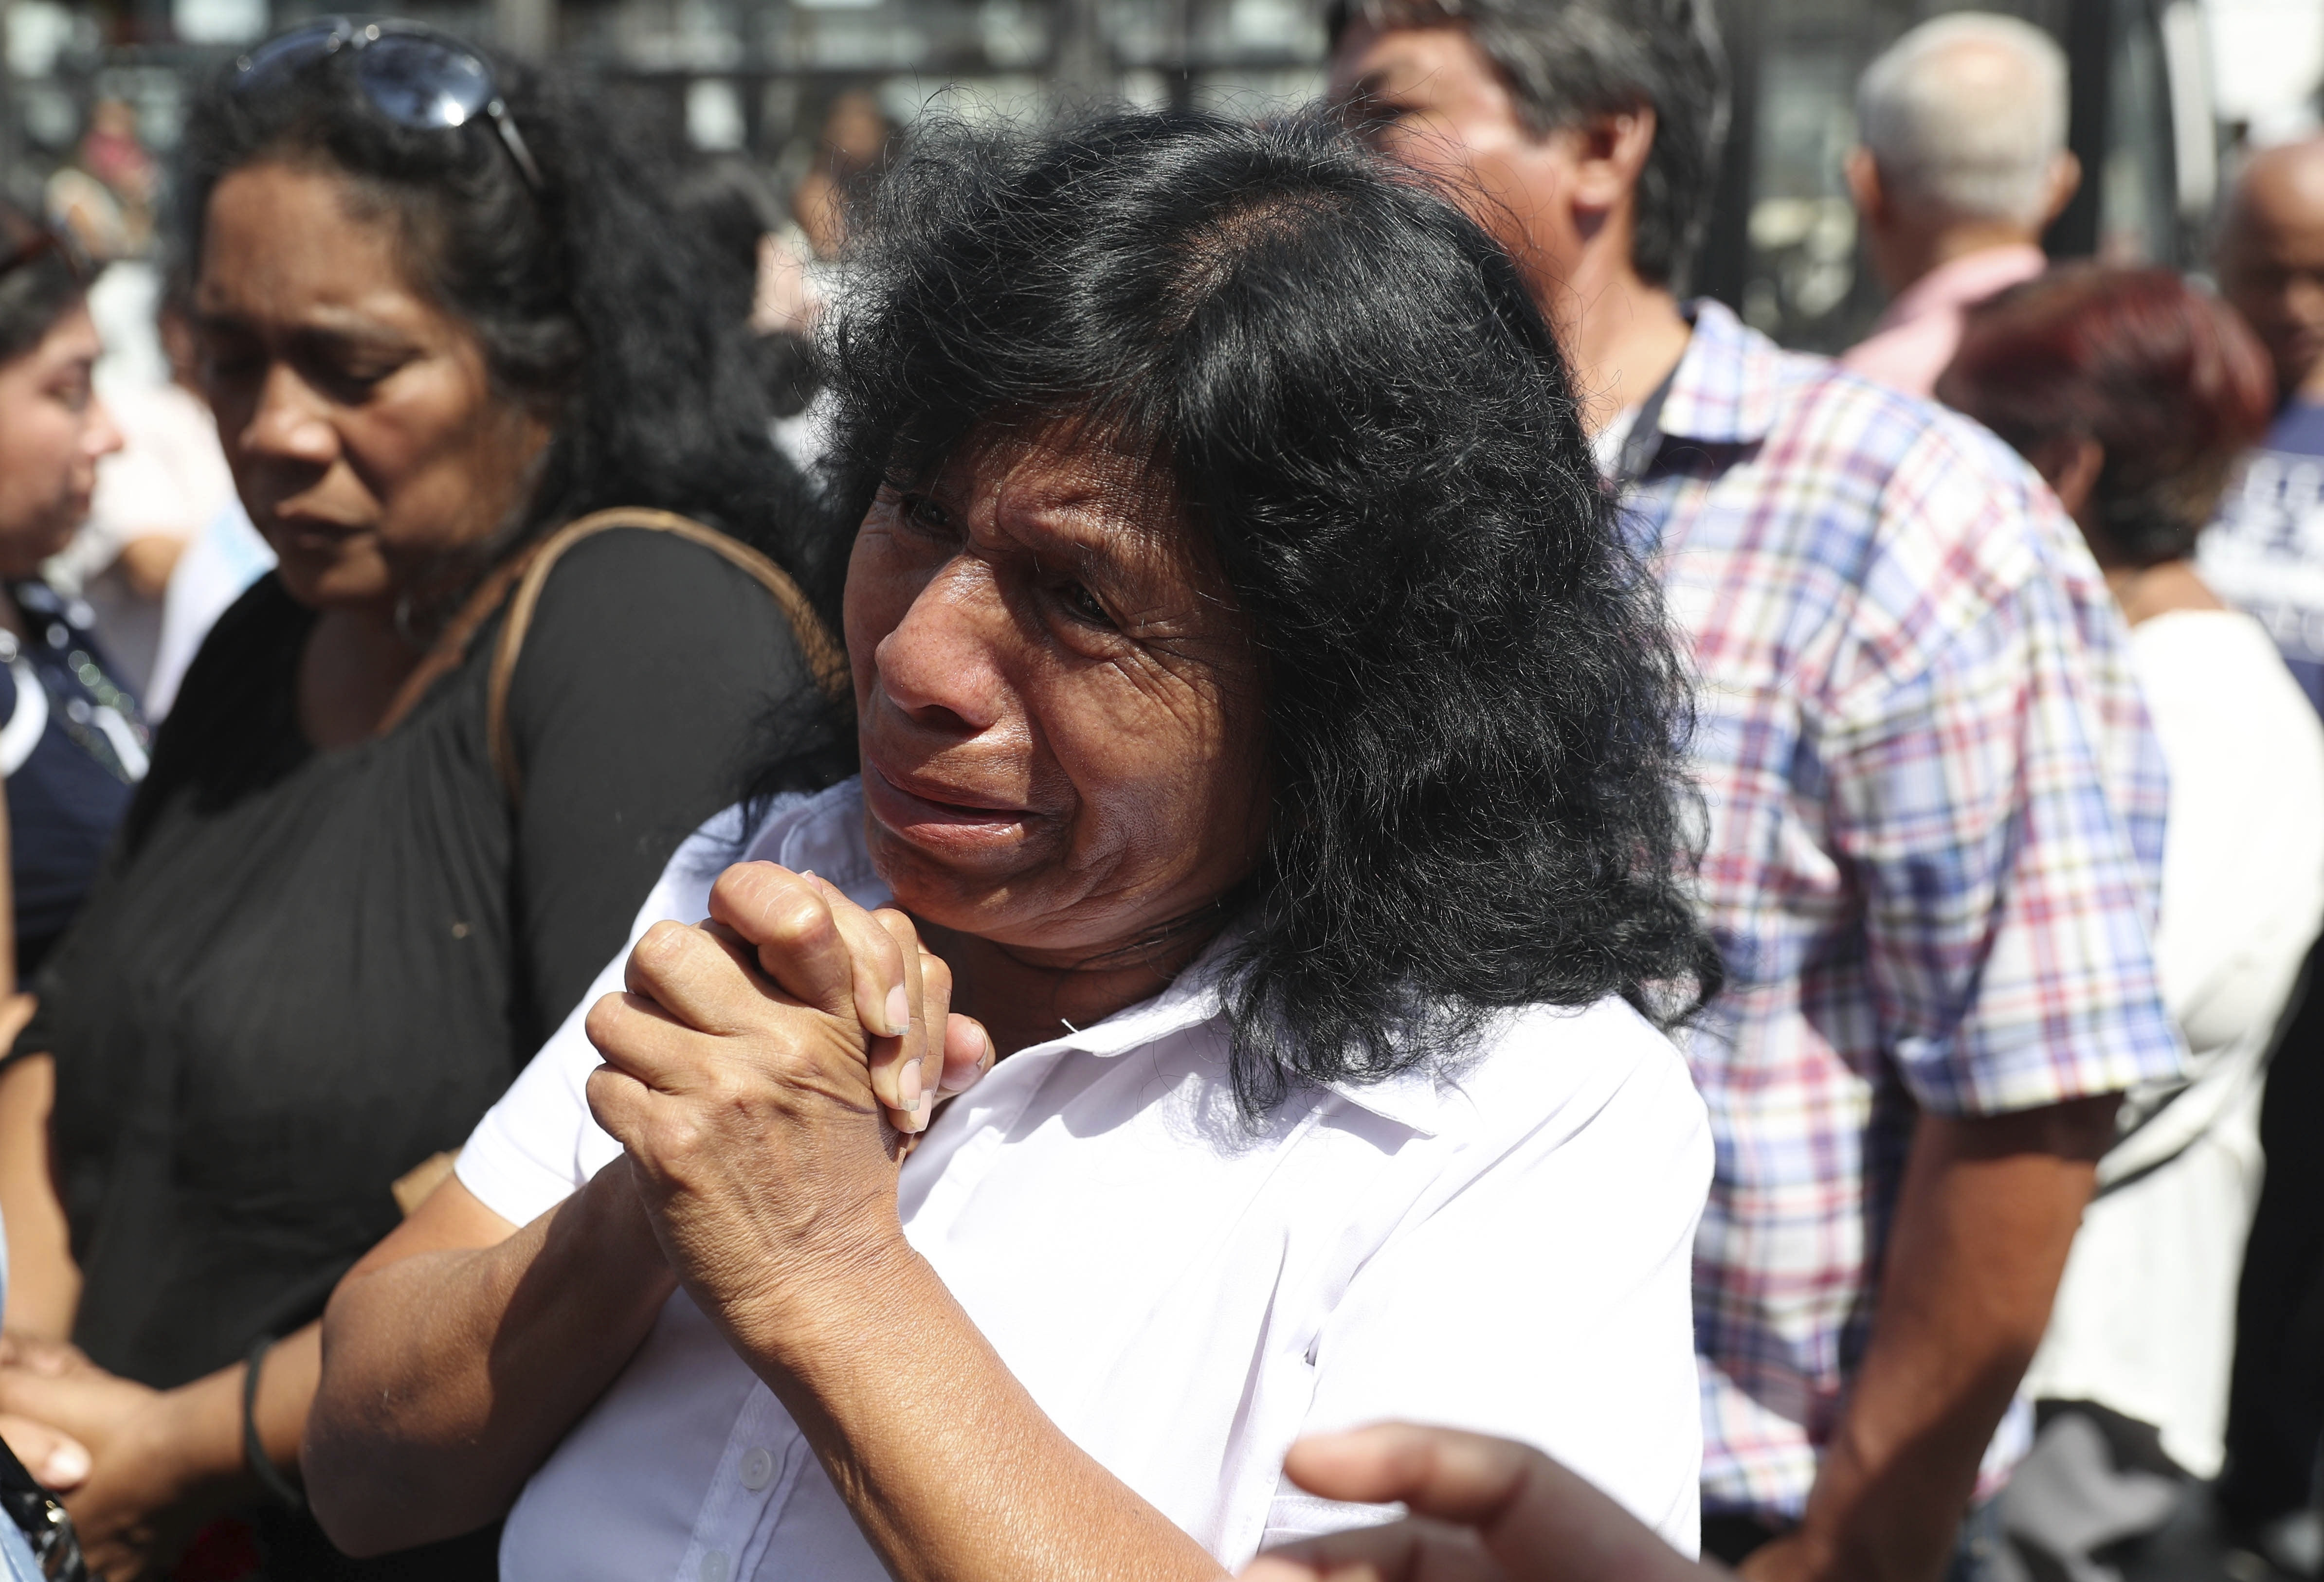 A supporter of former Peruvian President Alan Garcia grieves after learning of his death